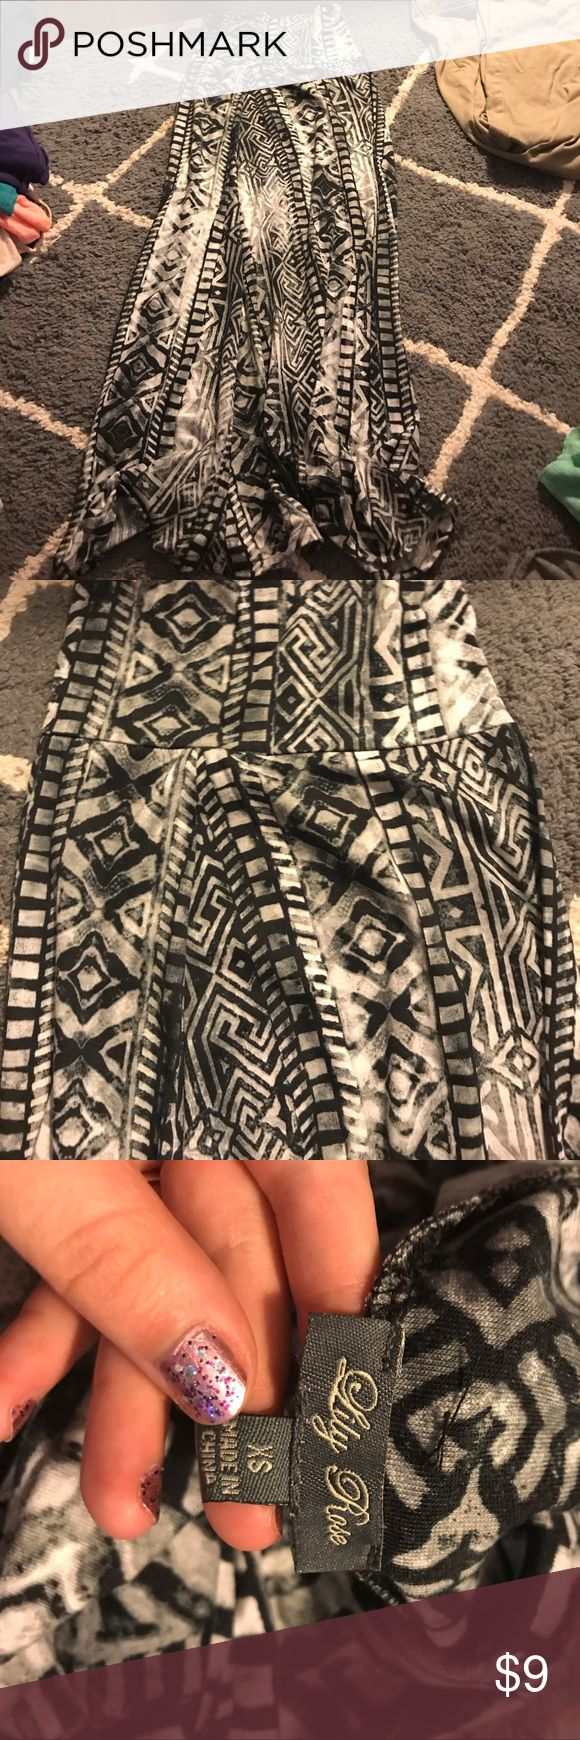 gray and black tribal maxi skirt nwot Charlotte Russe Skirts Maxi